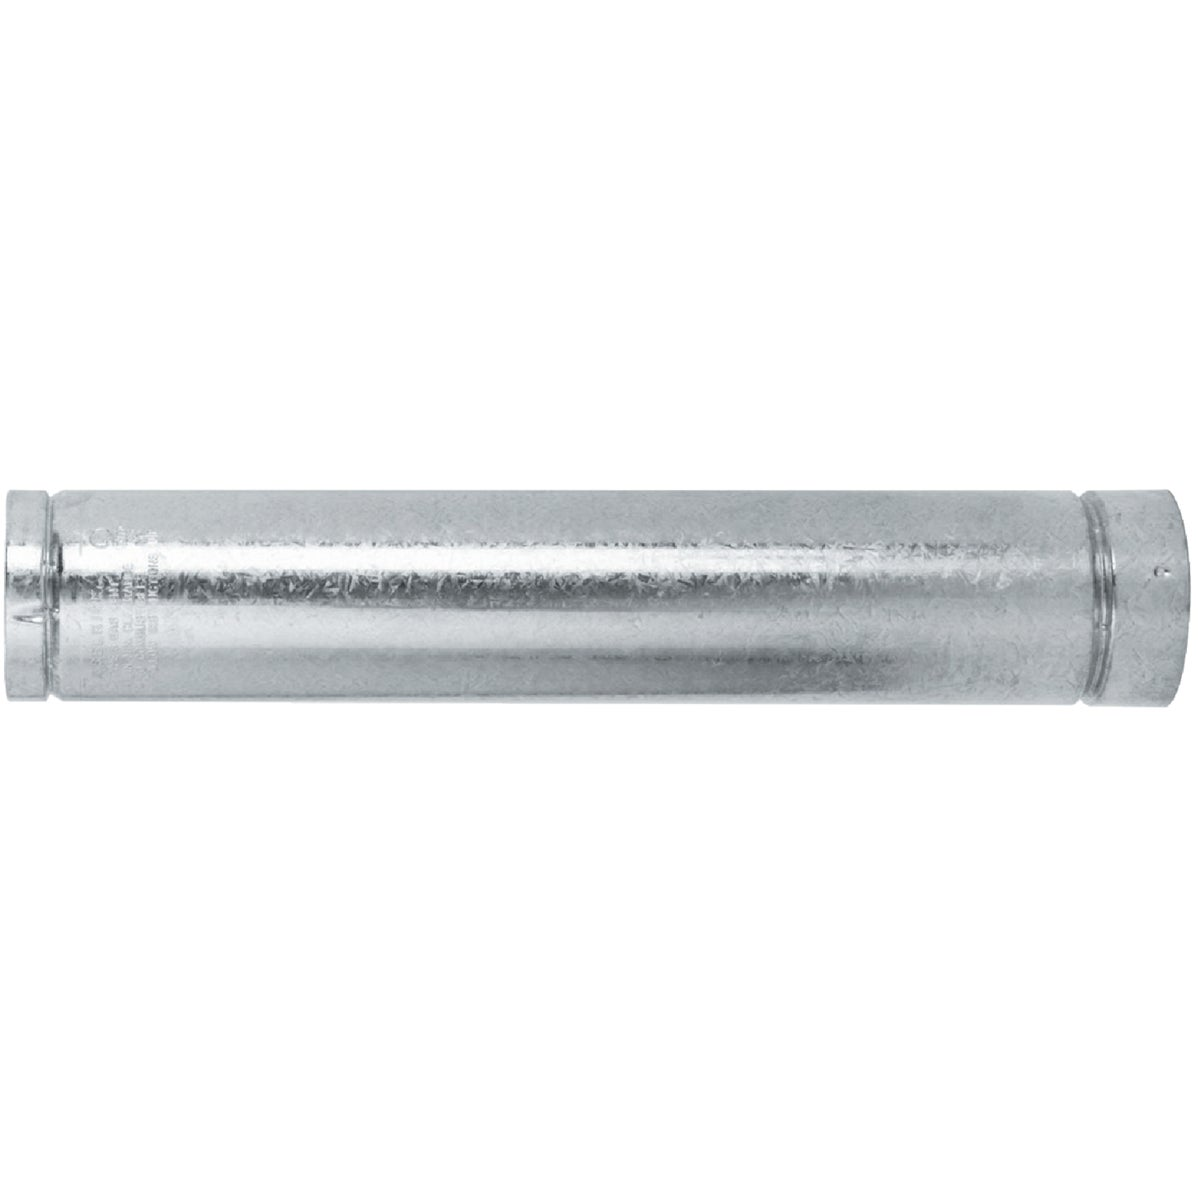 3X18 GAS VENT PIPE - 3RV-18 by Selkirk Corporation